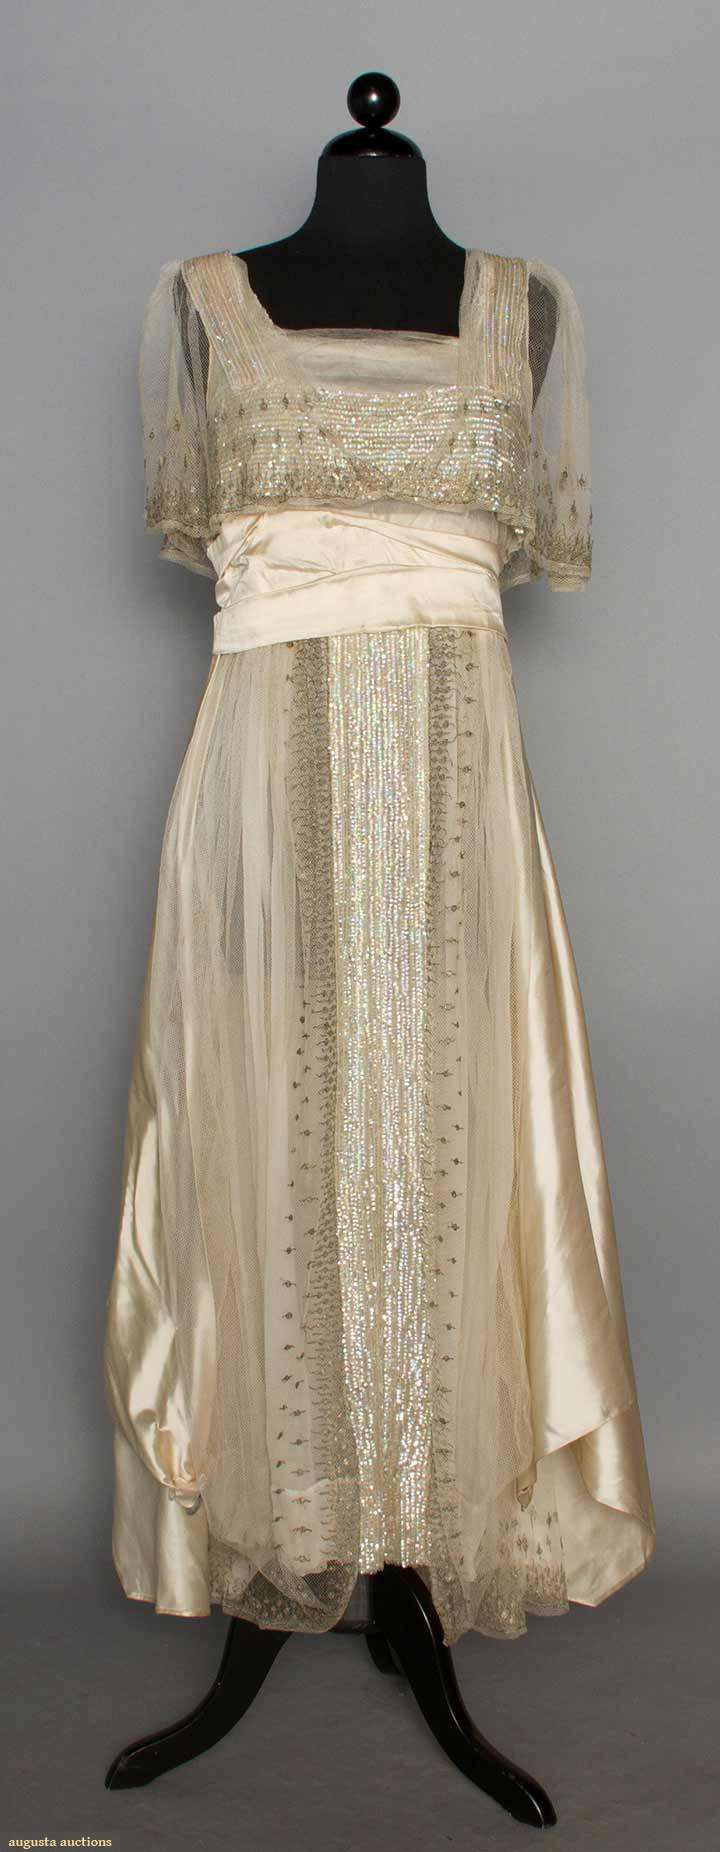 86 best 1900-1910s evening wear images on Pinterest | Evening ...